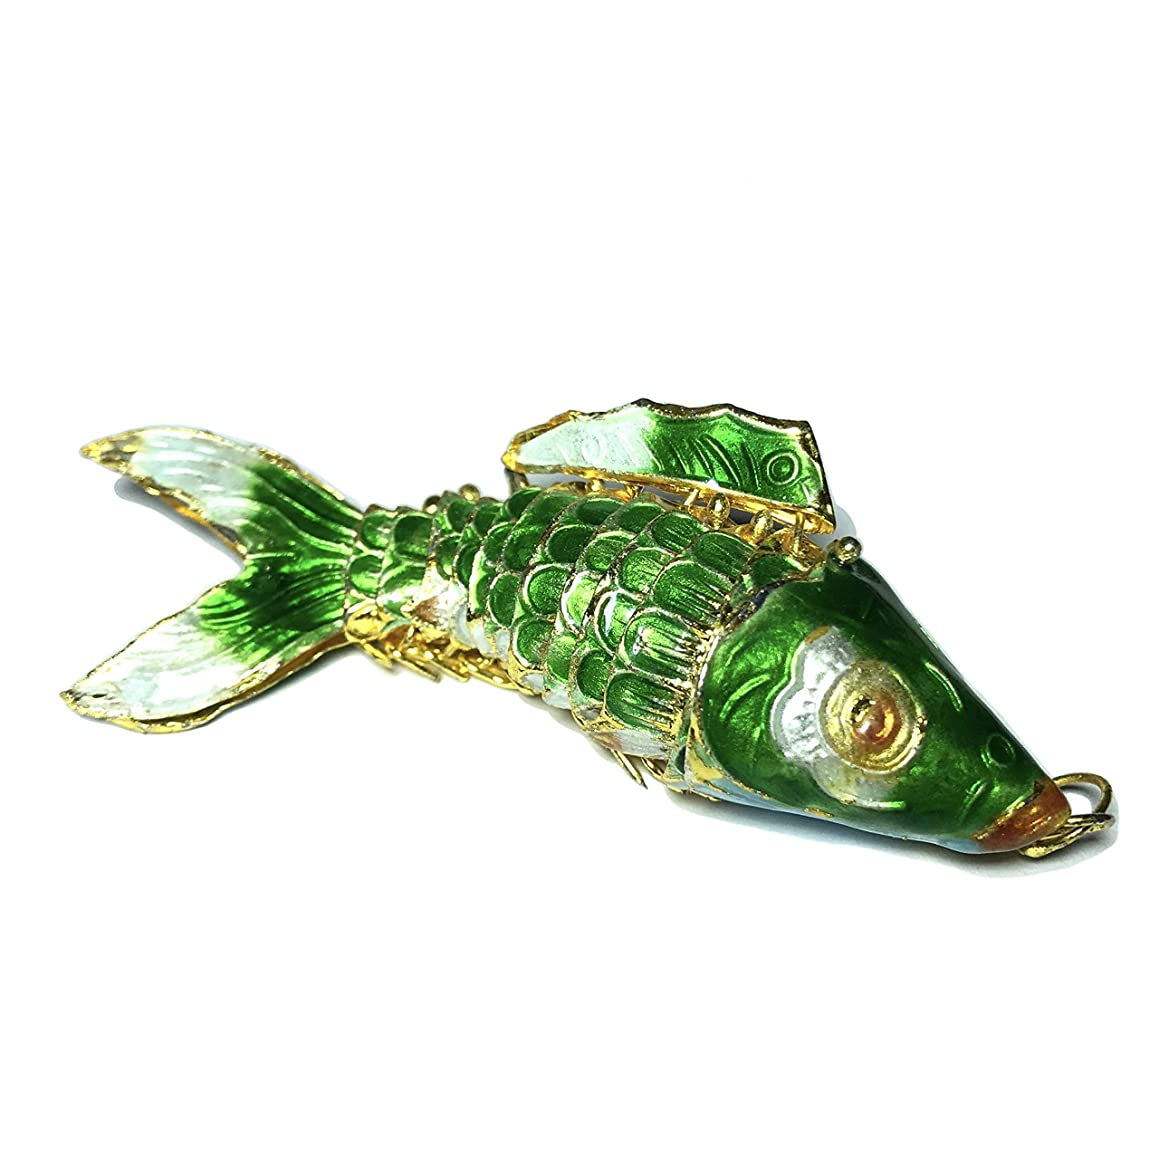 [ABCgems] Rare Antique Cloisonne Articulated Fish (Exquisite Color- Moves Like a Real Fish) 75mm Emerald Green Pendant for Beading & Jewelry Making